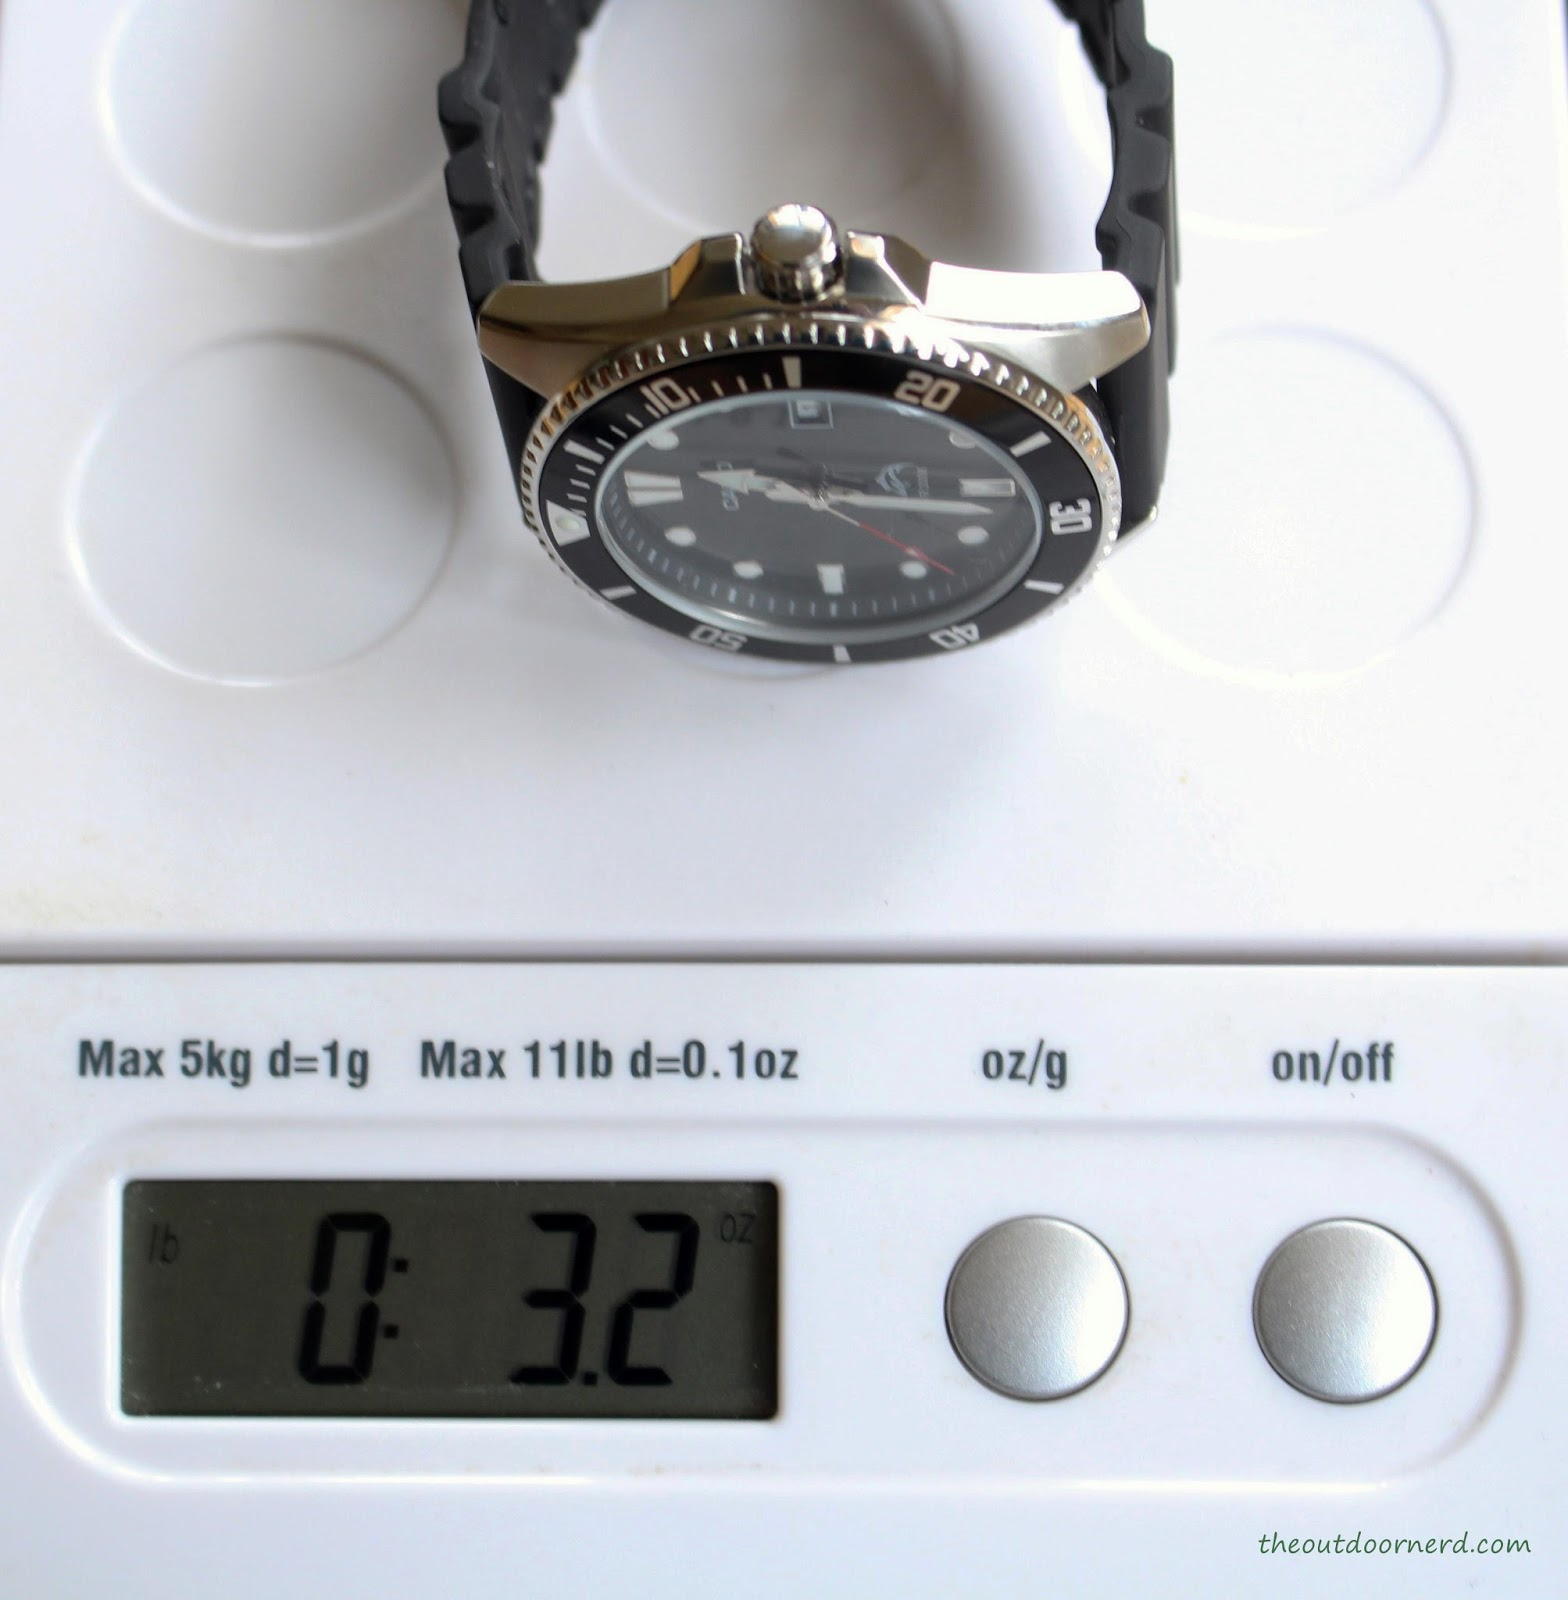 Casio MDV106-1A Diver's Watch: On Scale